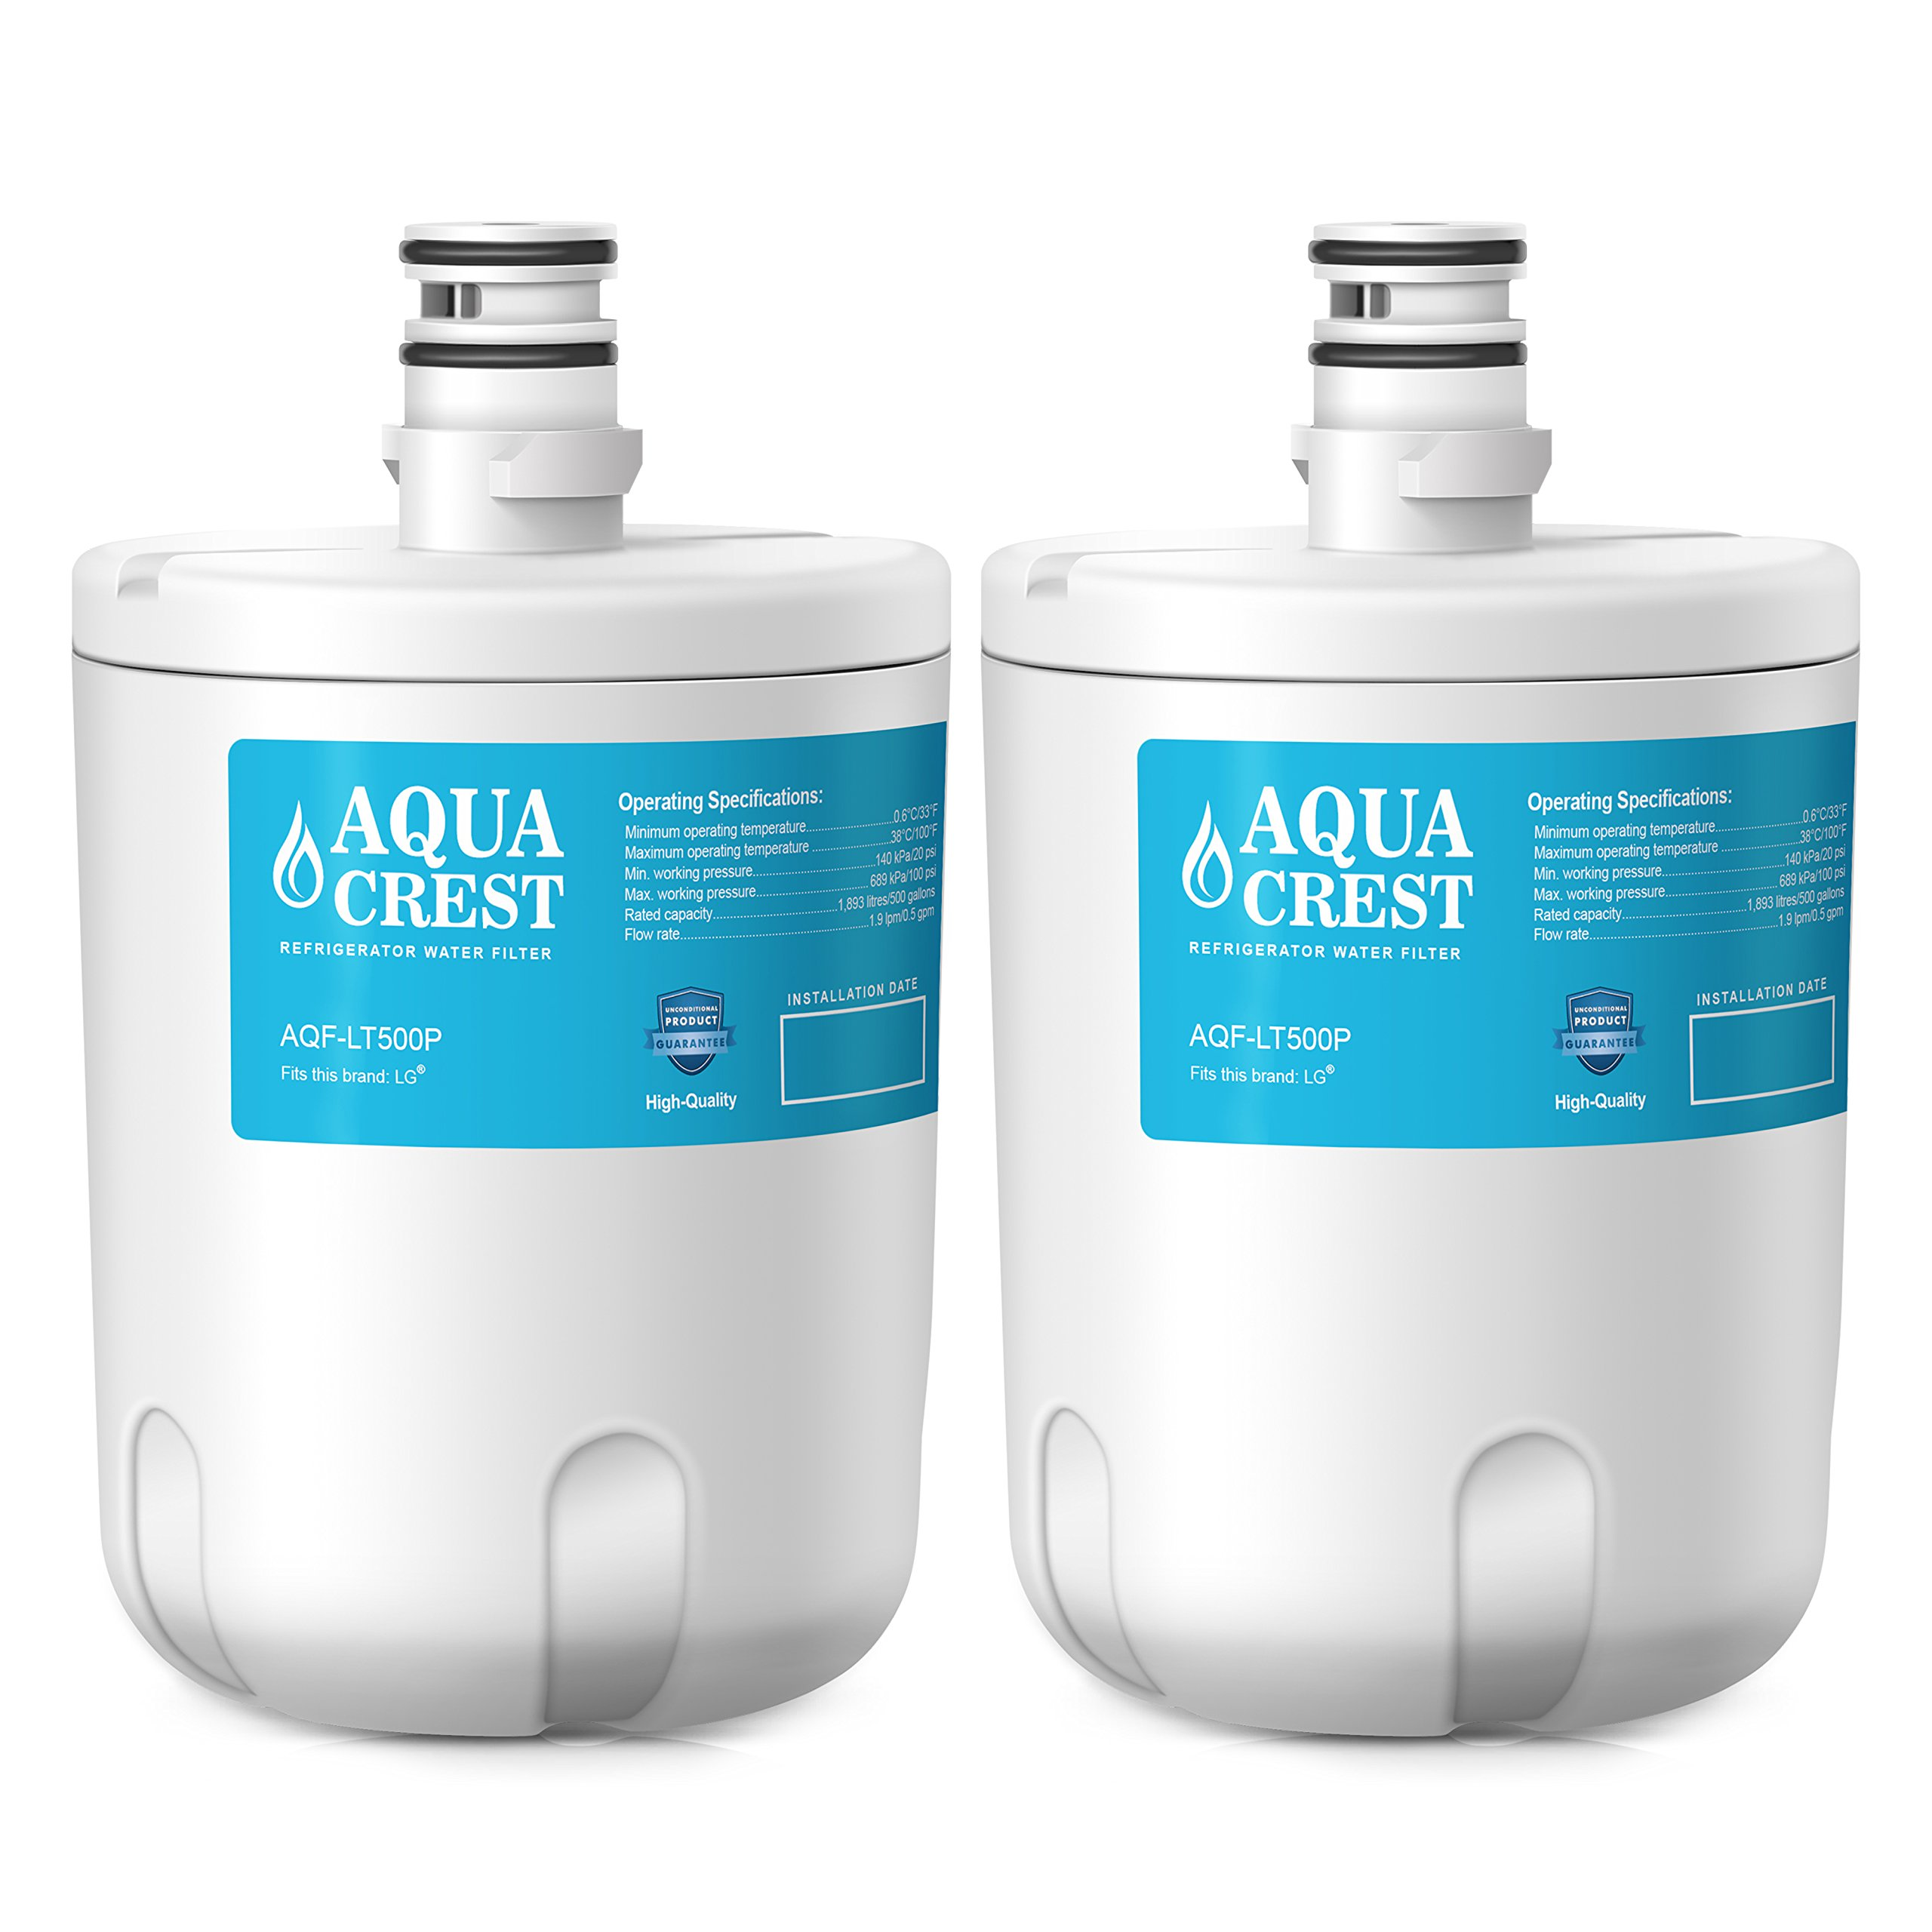 AQUACREST AQF-LT500P Replacement Refrigerator Water Filter, Compatible with LG 5231JA2002A, LT500P, ADQ72910901, ADQ72910907, Kenmore 9890, 46-9890, 469890, 2 Pack